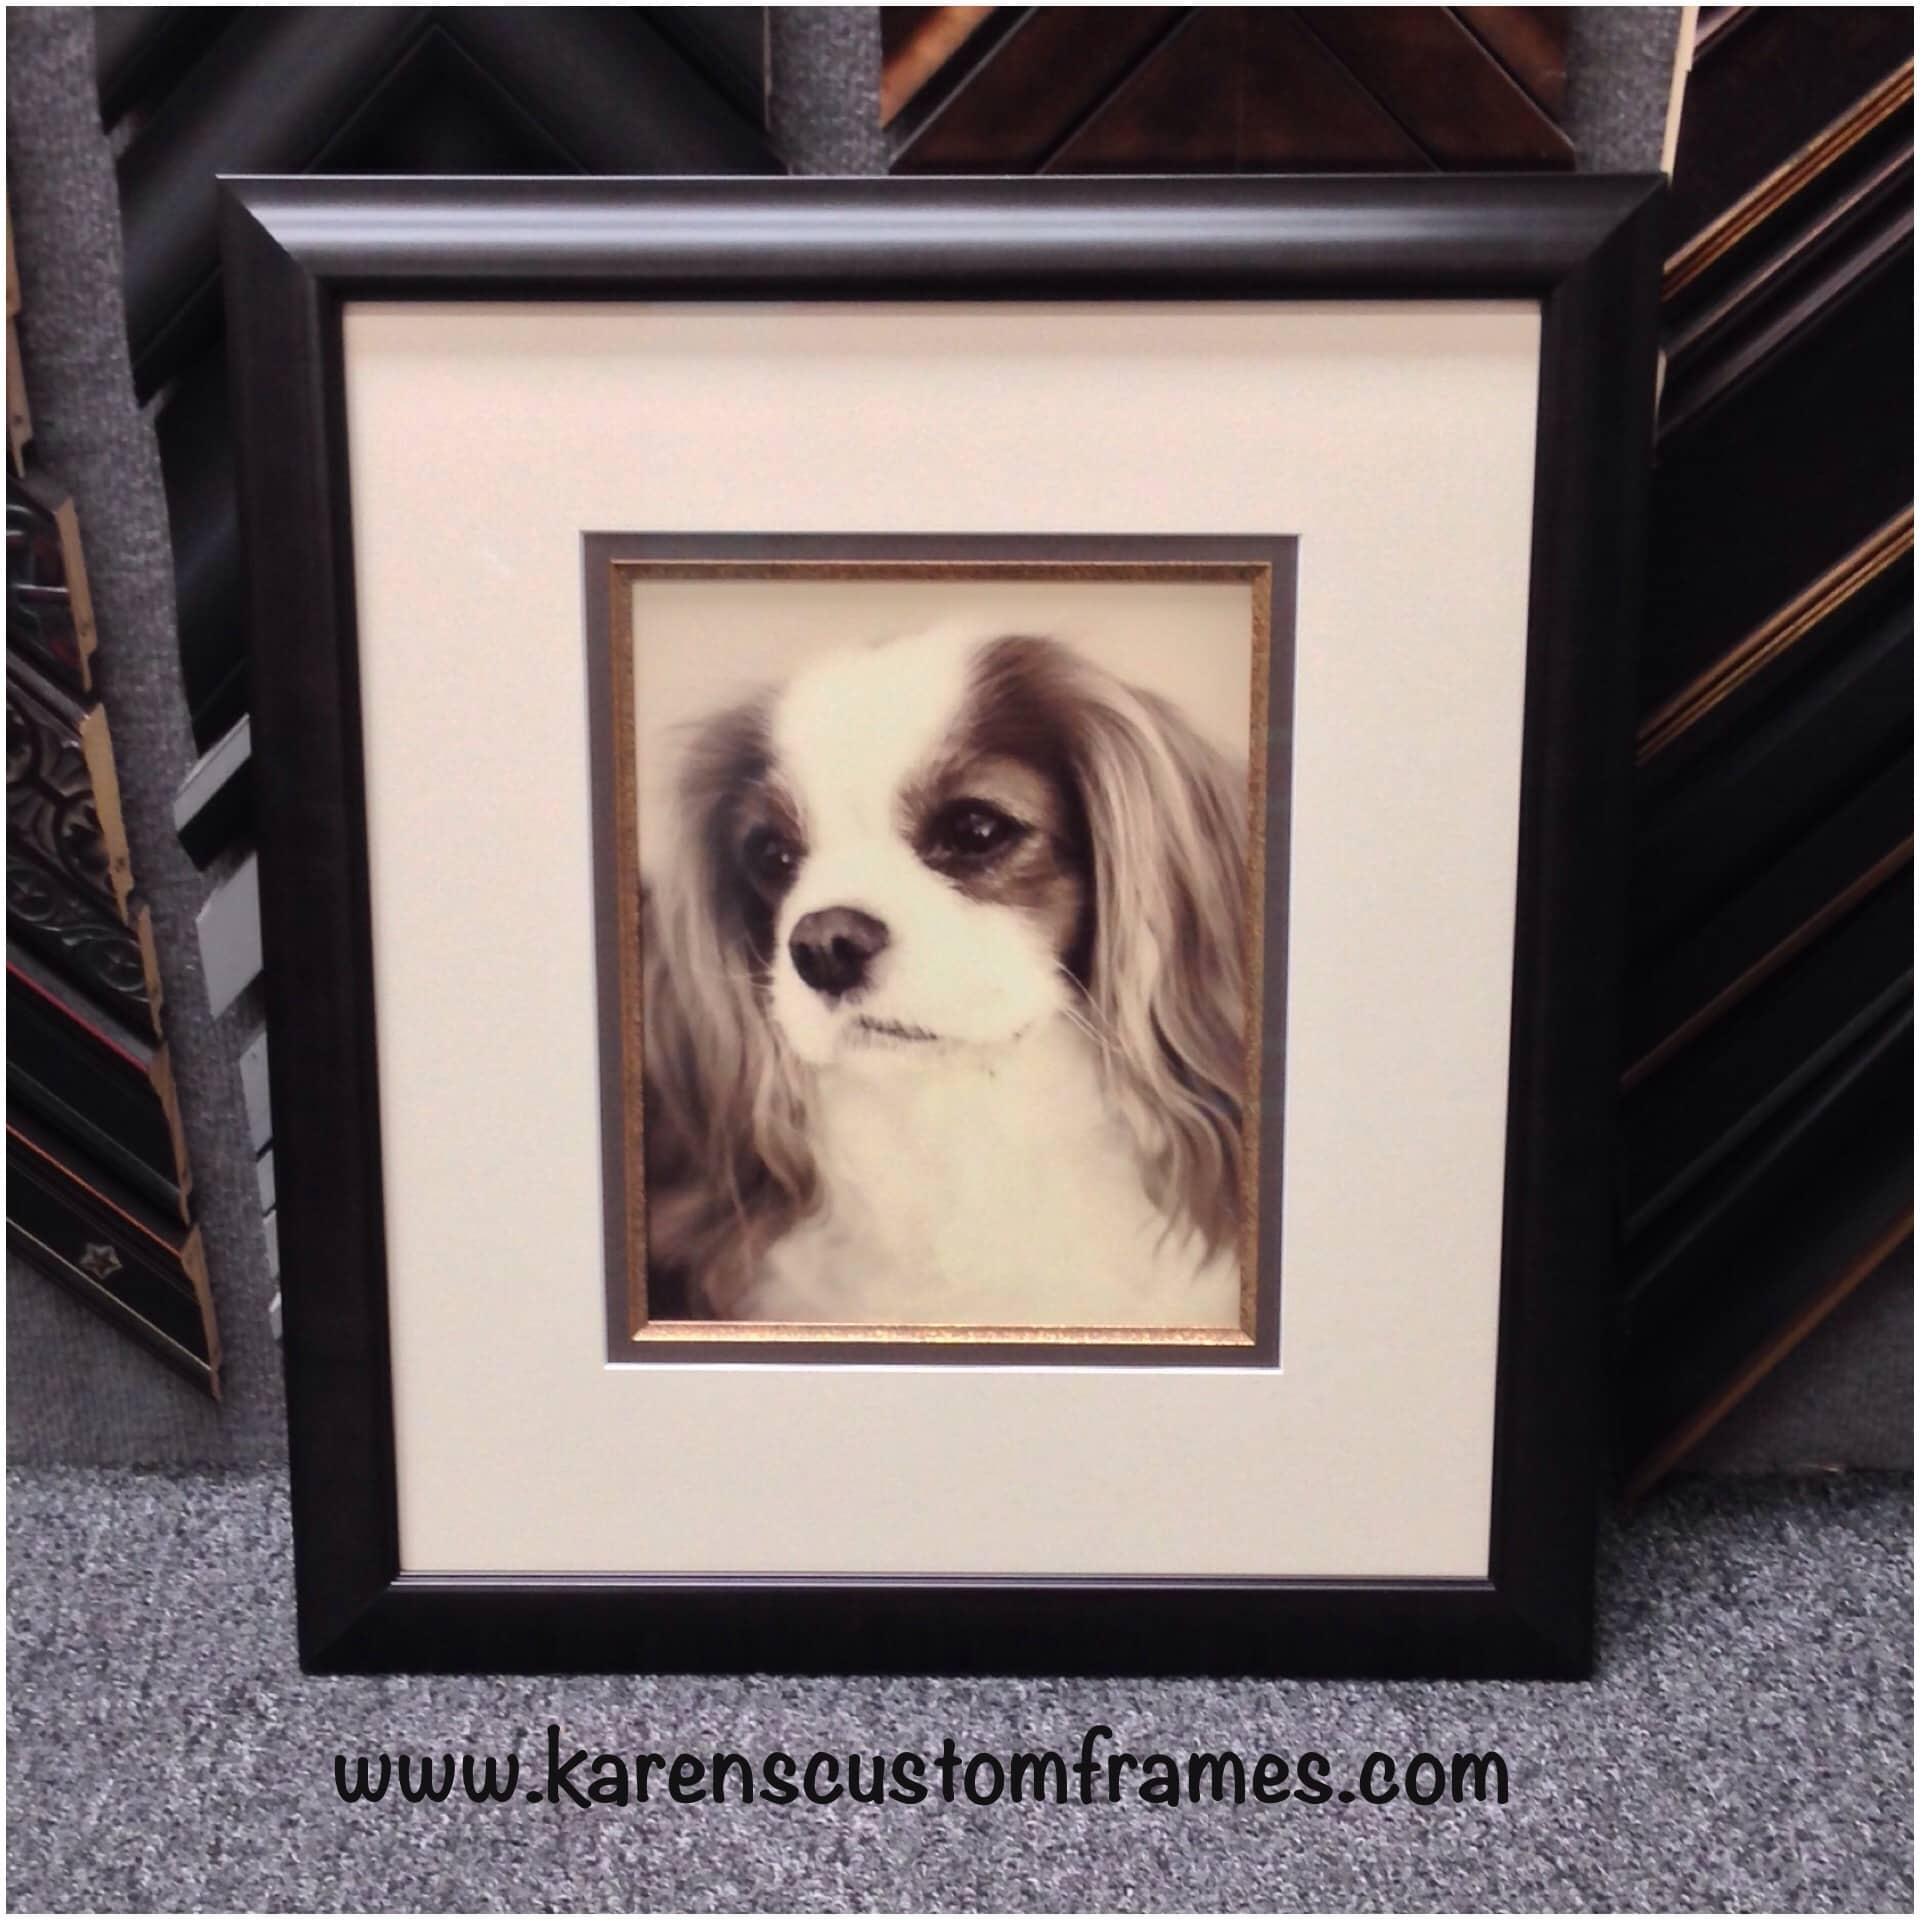 Dog Photography | Custom Design and Framing by Karen's Detail Custom Frames